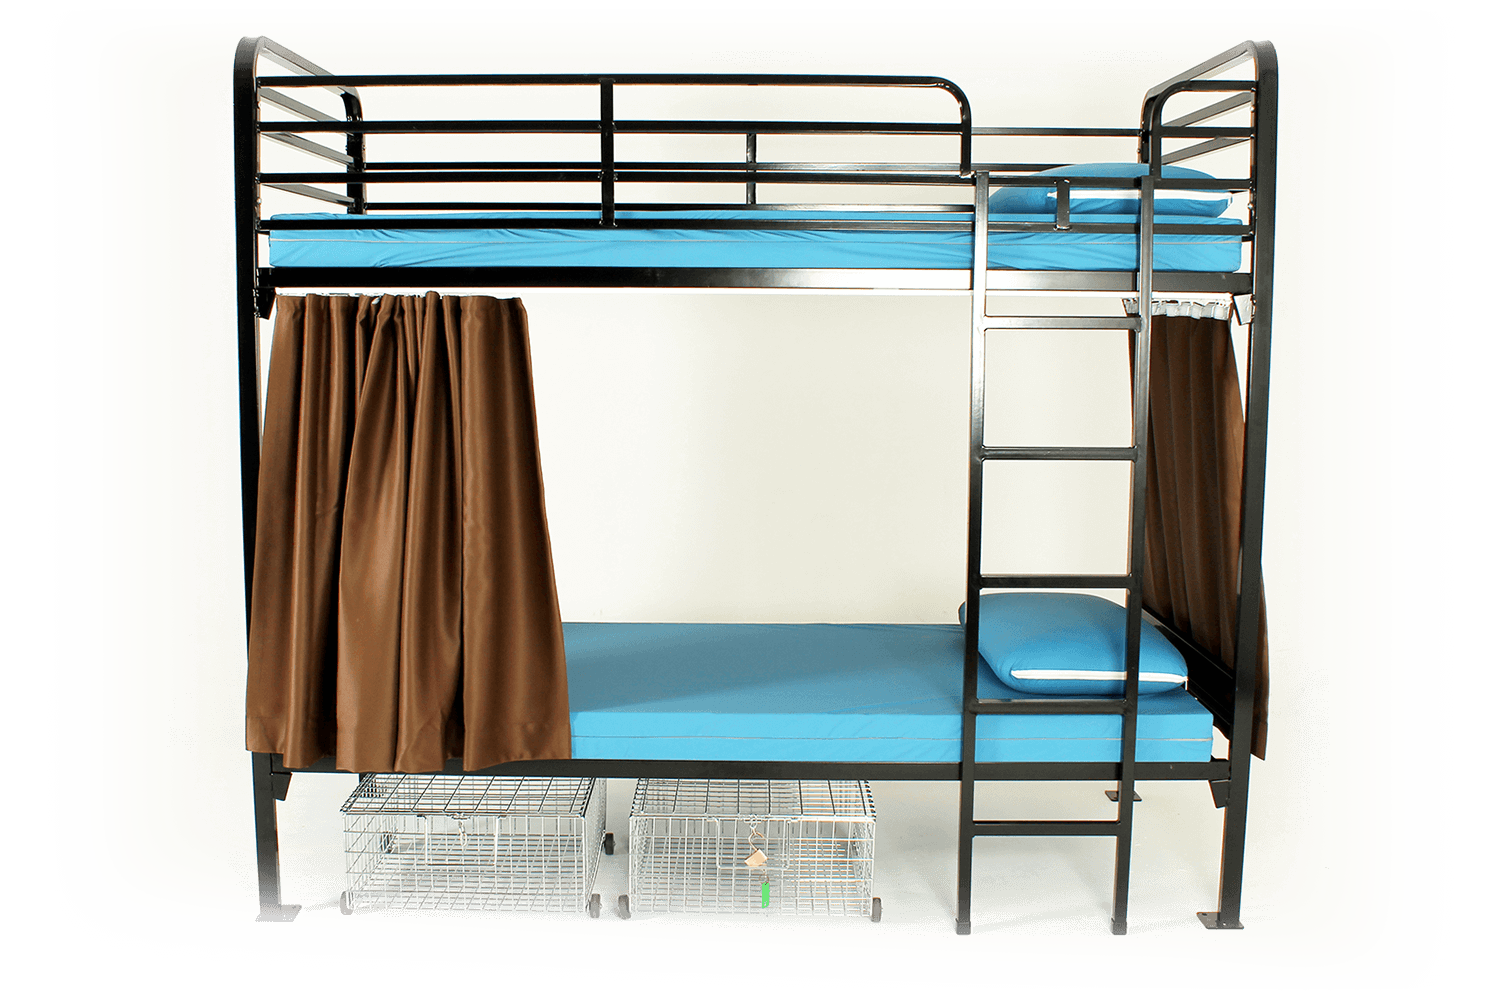 Bunk Bed Solutions for strong, heavy duty bunk beds? visit heavy duty bunk beds!